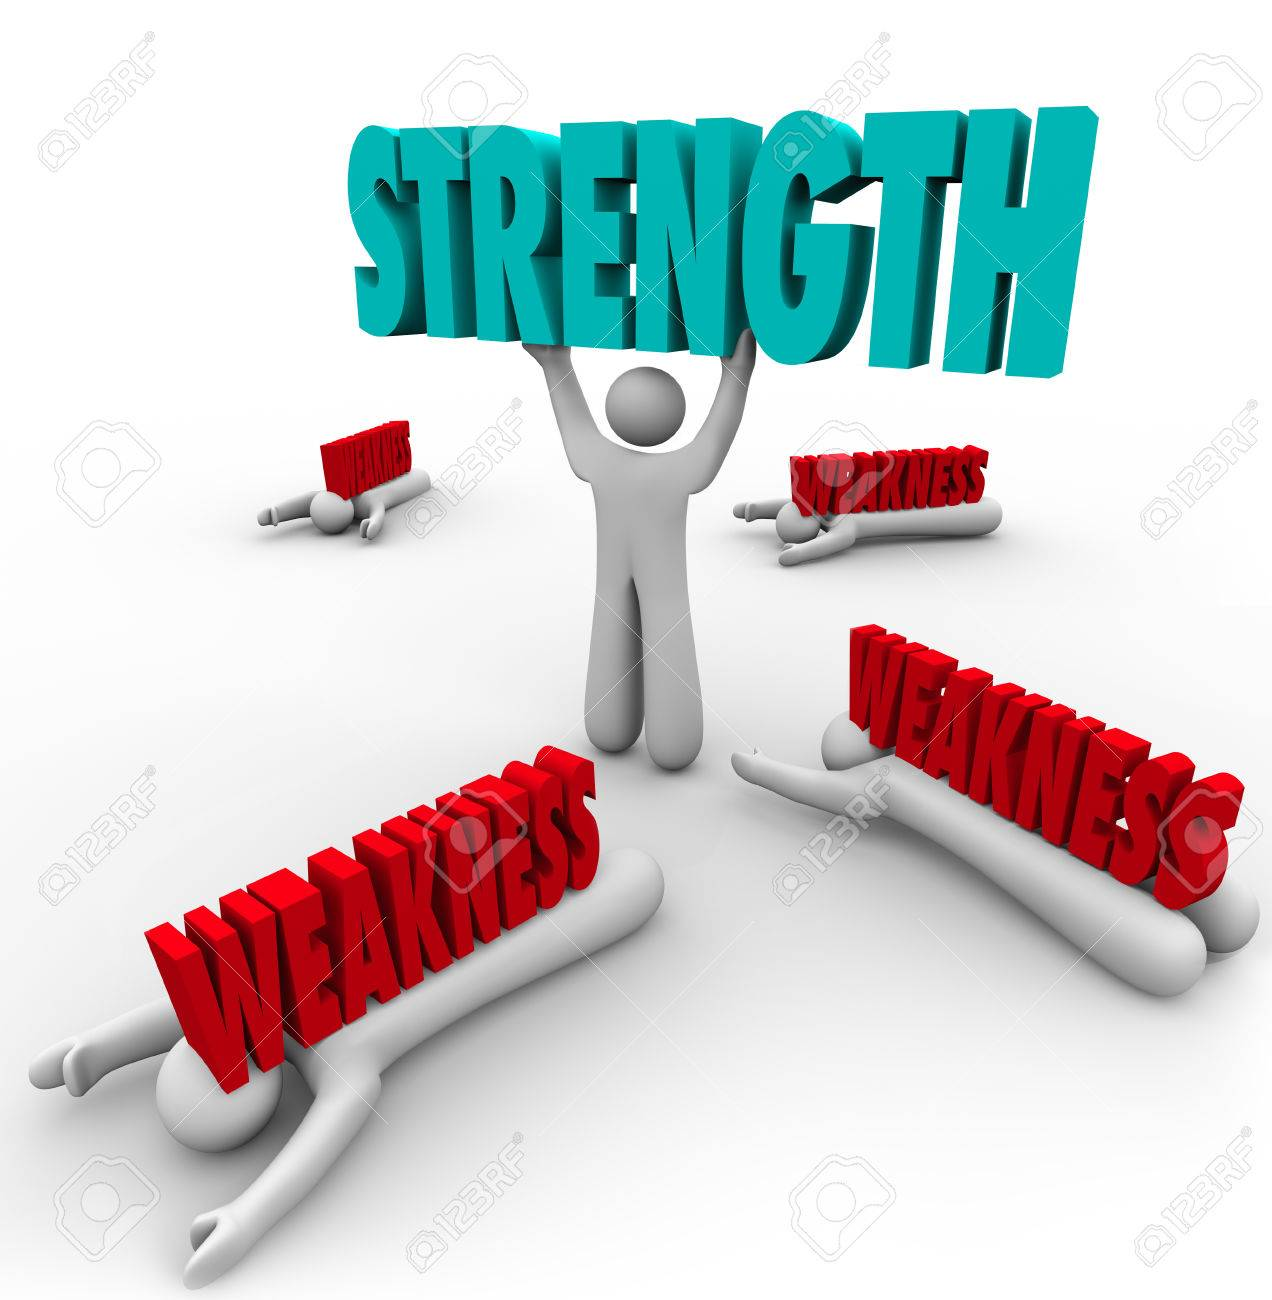 weakness images stock pictures royalty weakness photos and weakness strength word lifted by a strong or skilled person while the competition is crushed